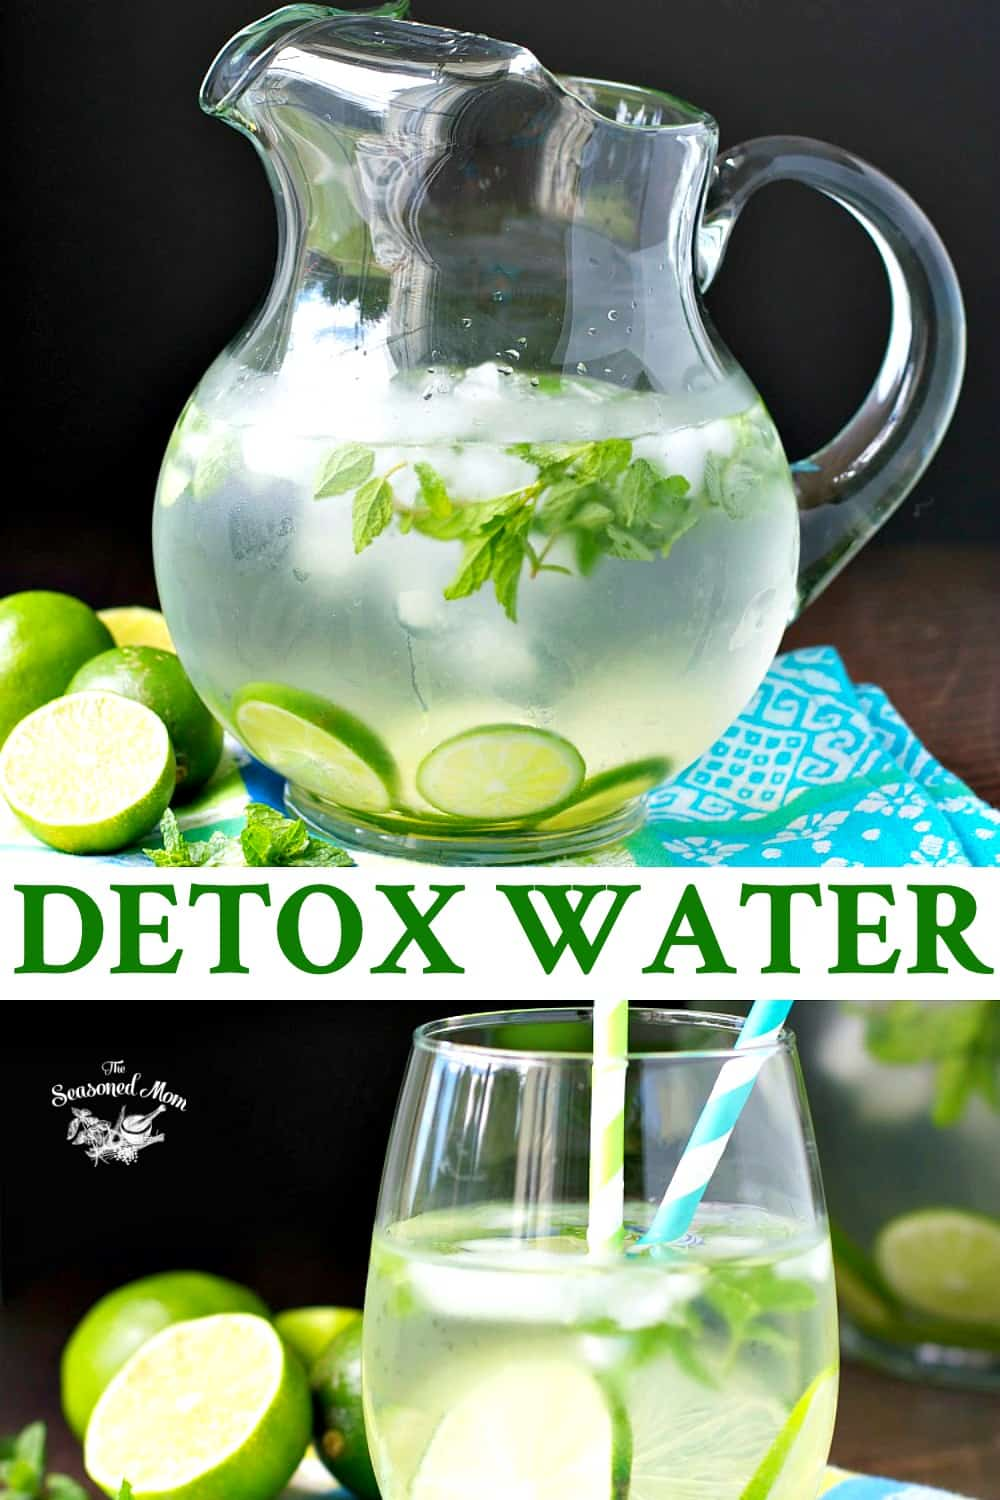 Long collage of mojito infused detox water